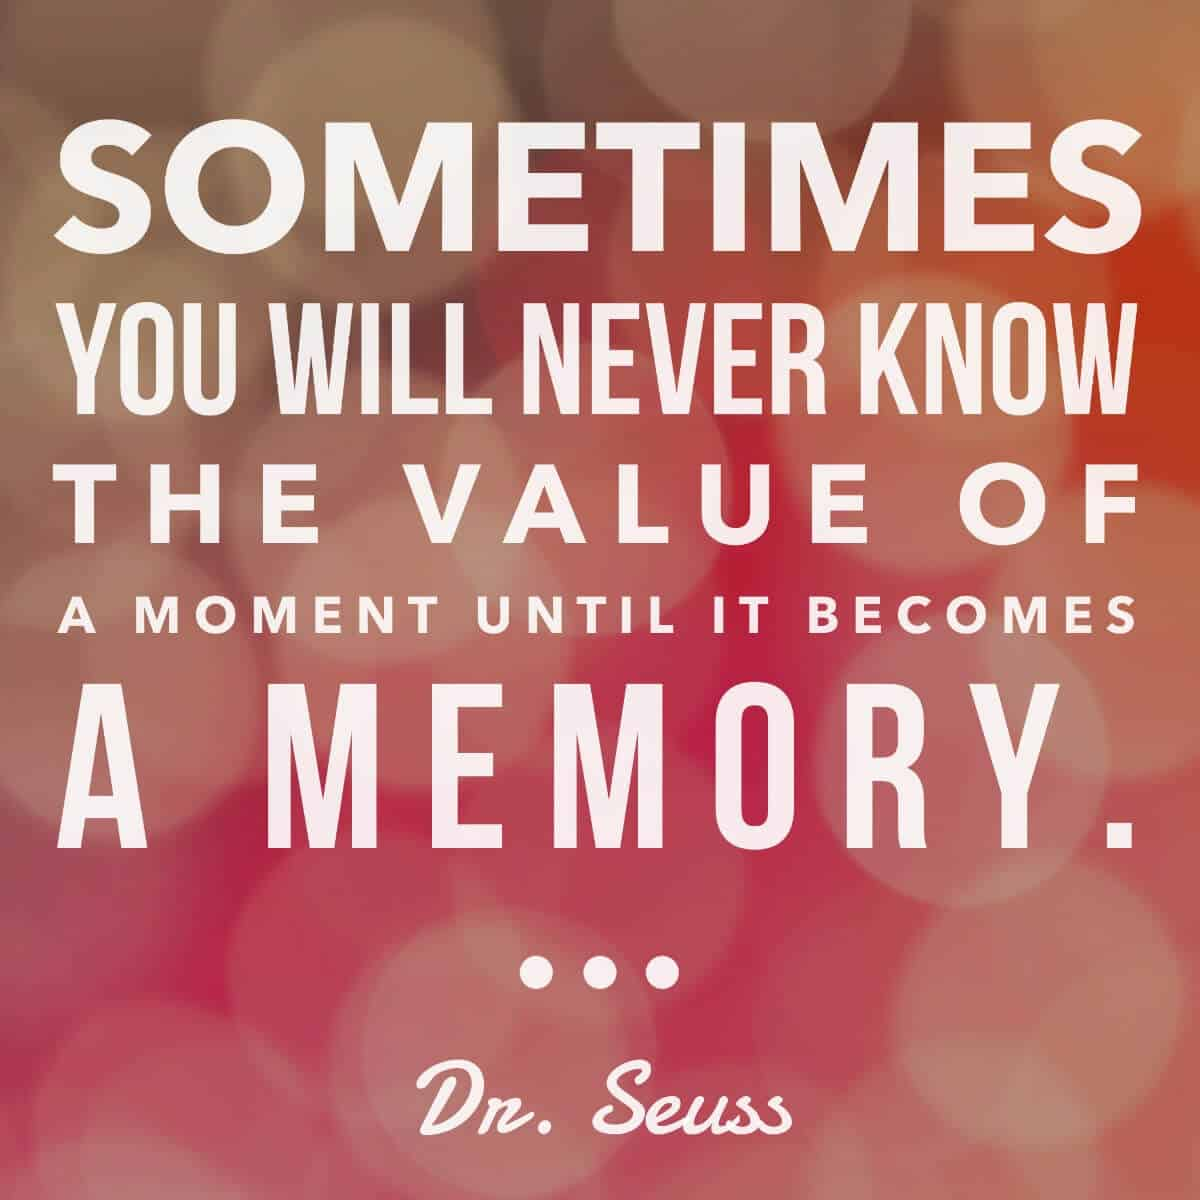 Dr Seuss Memory: The Value Of A Memory